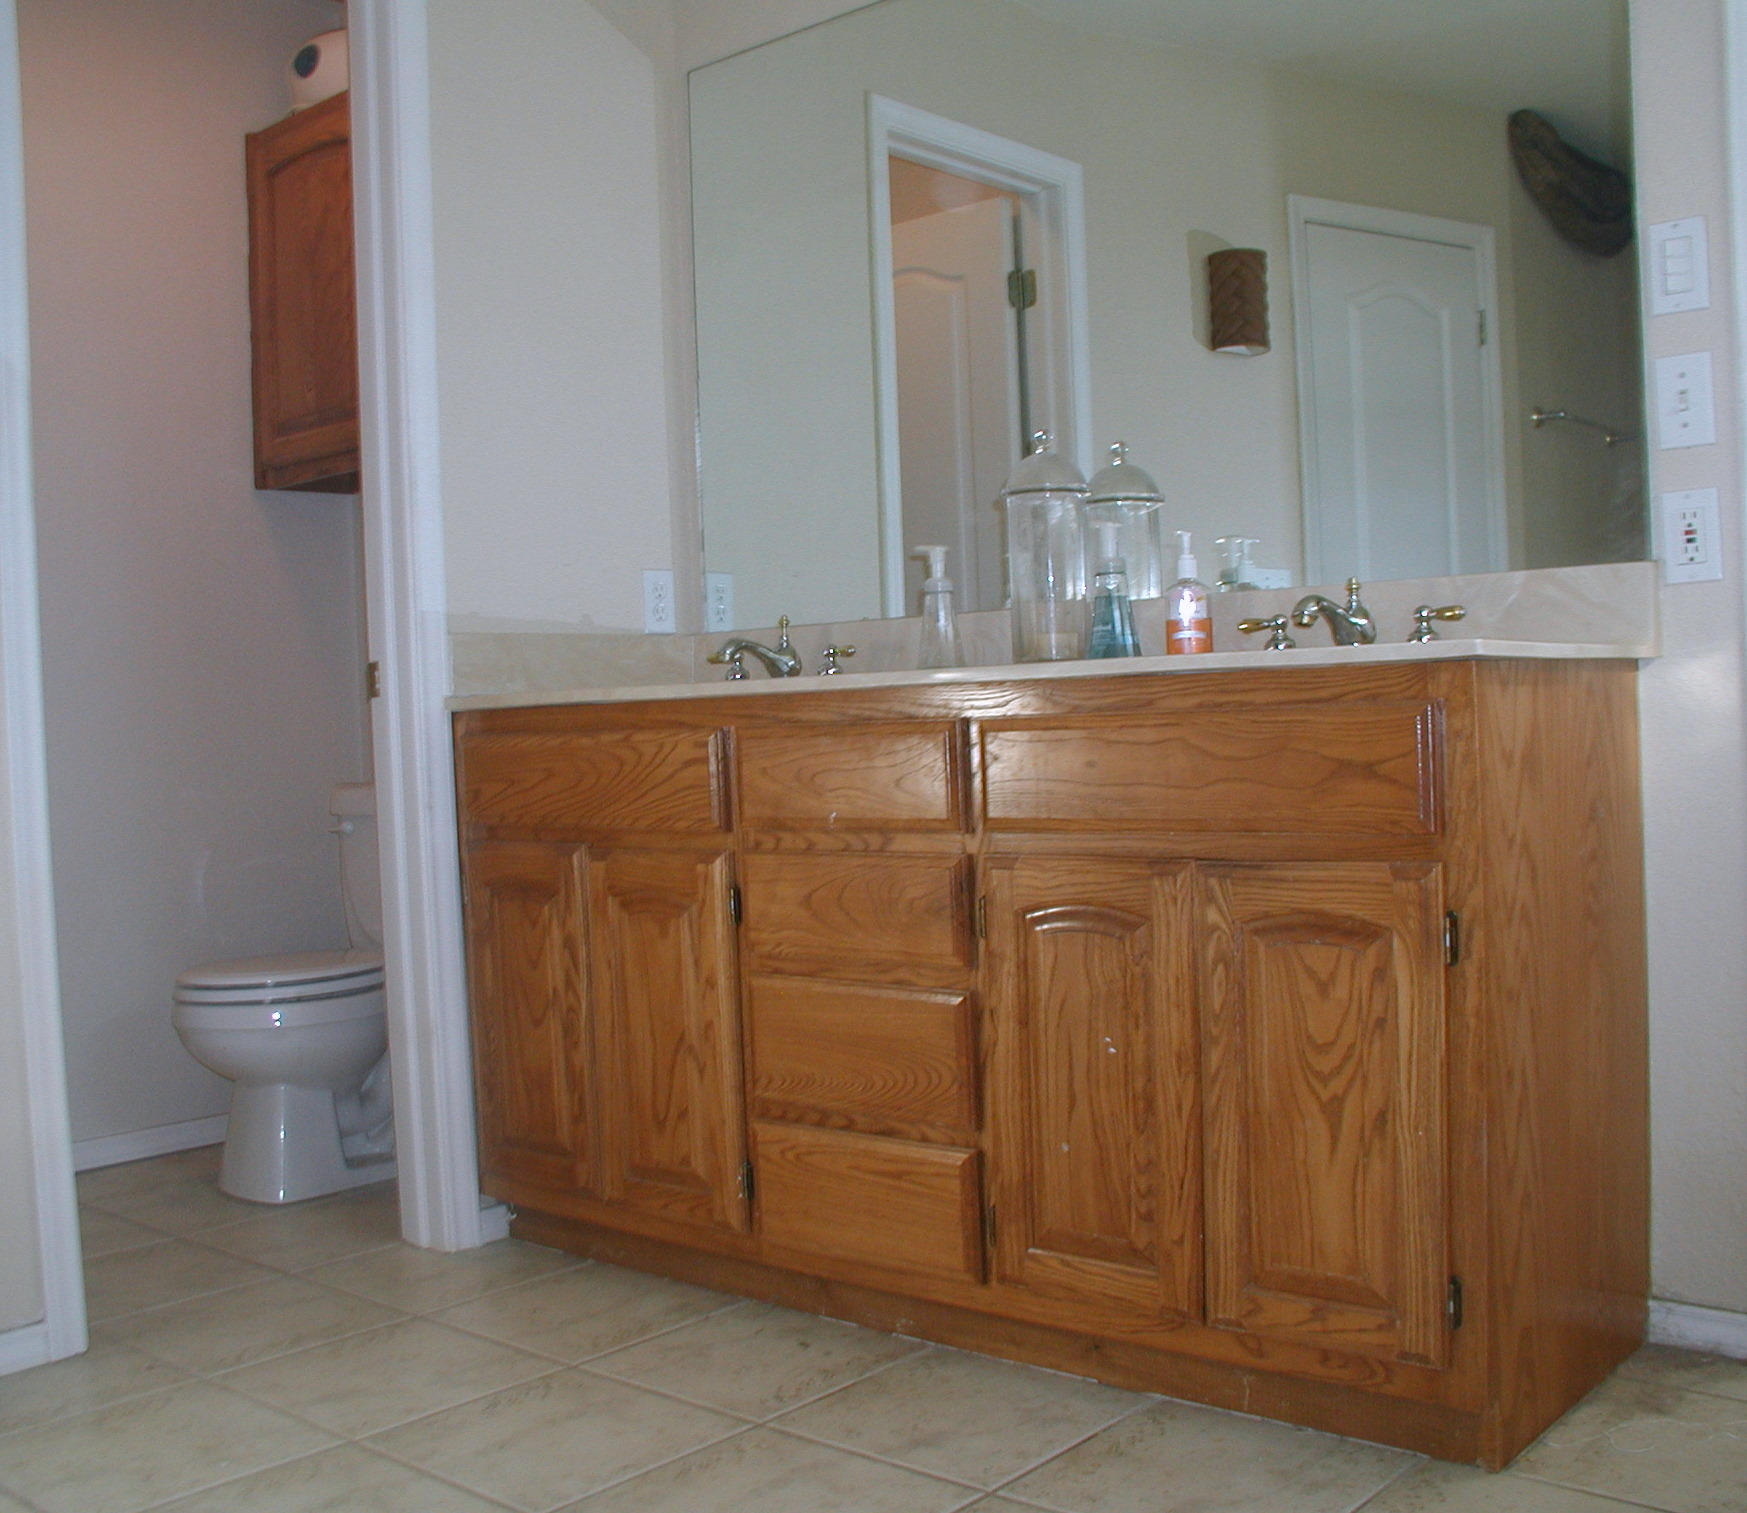 Project transforming builder grade cabinets to old world - Bathroom paint colors with oak cabinets ...